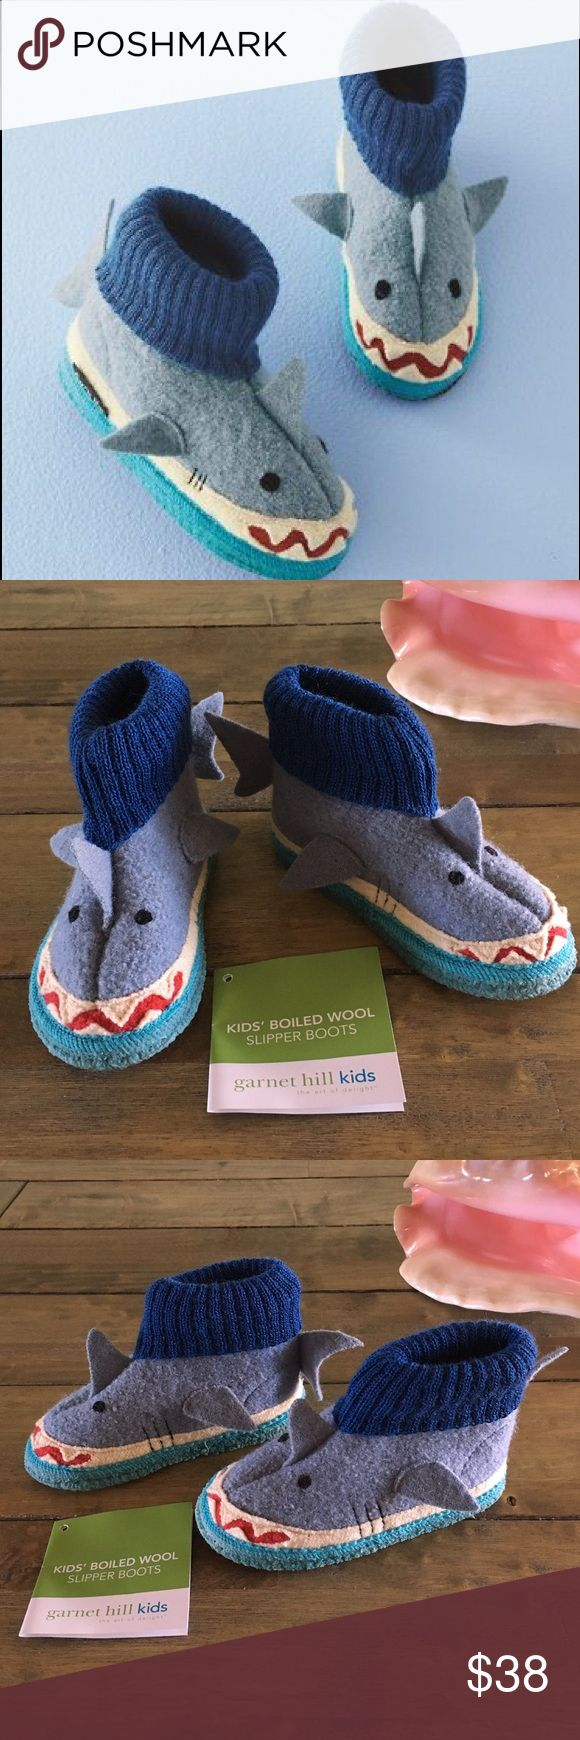 """Garnet Hill Baby/Toddler Shark Slipper Boots Super Cute Brand New w/o Box Garnet Hill /BabyToddler Boiled Wool Shark Slipper Boots UNISEX STYLE!  Size 07  Length 7""""  Handmade Super soft boiled wool boots with knit cuffs  Designed for INDOOR wear! Please read details in pic 8  Latex dots on bottoms and hard but bendable soles  Flexible wool & cuffs makes them easy to put on & take off  Never worn, no flaws!!  Sold out!!  Have soft shark fins on top, sides and backs  From a smoke free home  PP…"""